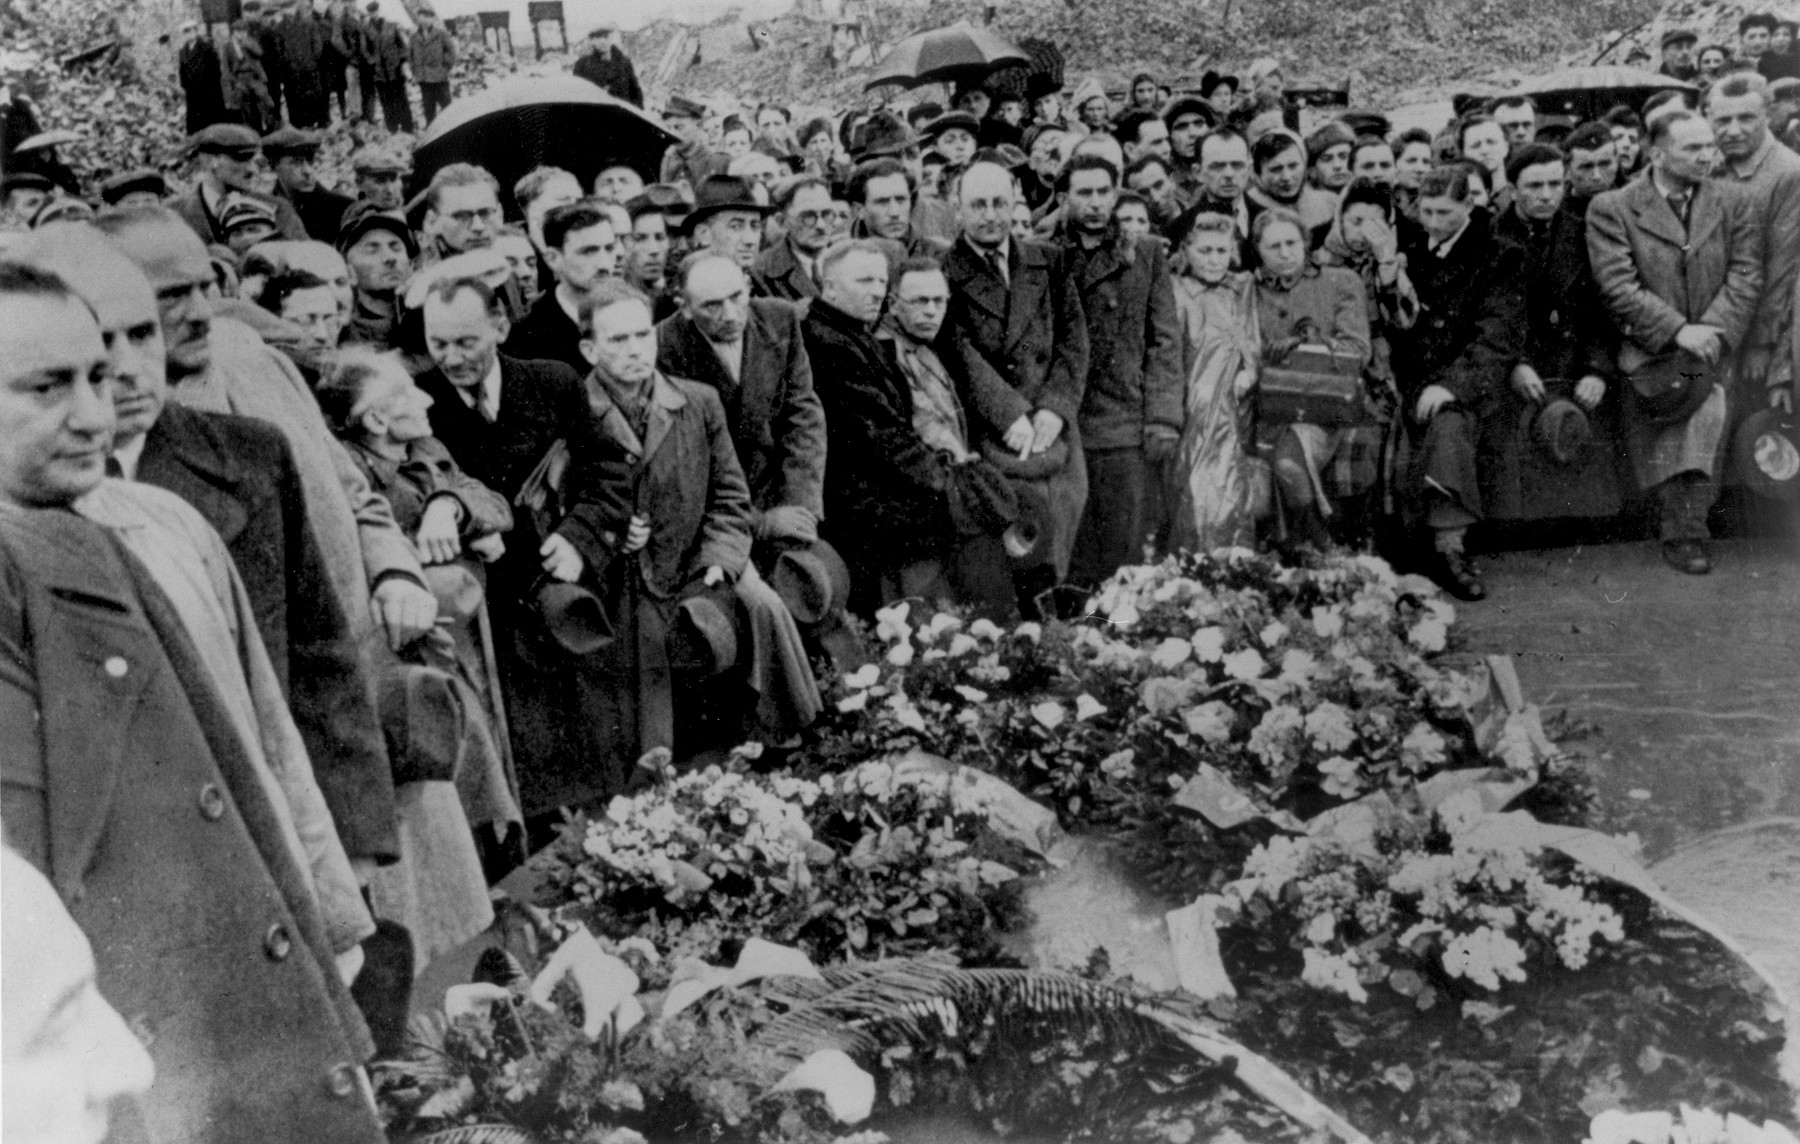 Jewish survivors attend a ceremony in front of the ruins of the former headquarters of the Warsaw ghetto Jewish council [probably to mark the fourth anniversary of the Warsaw ghetto uprising].